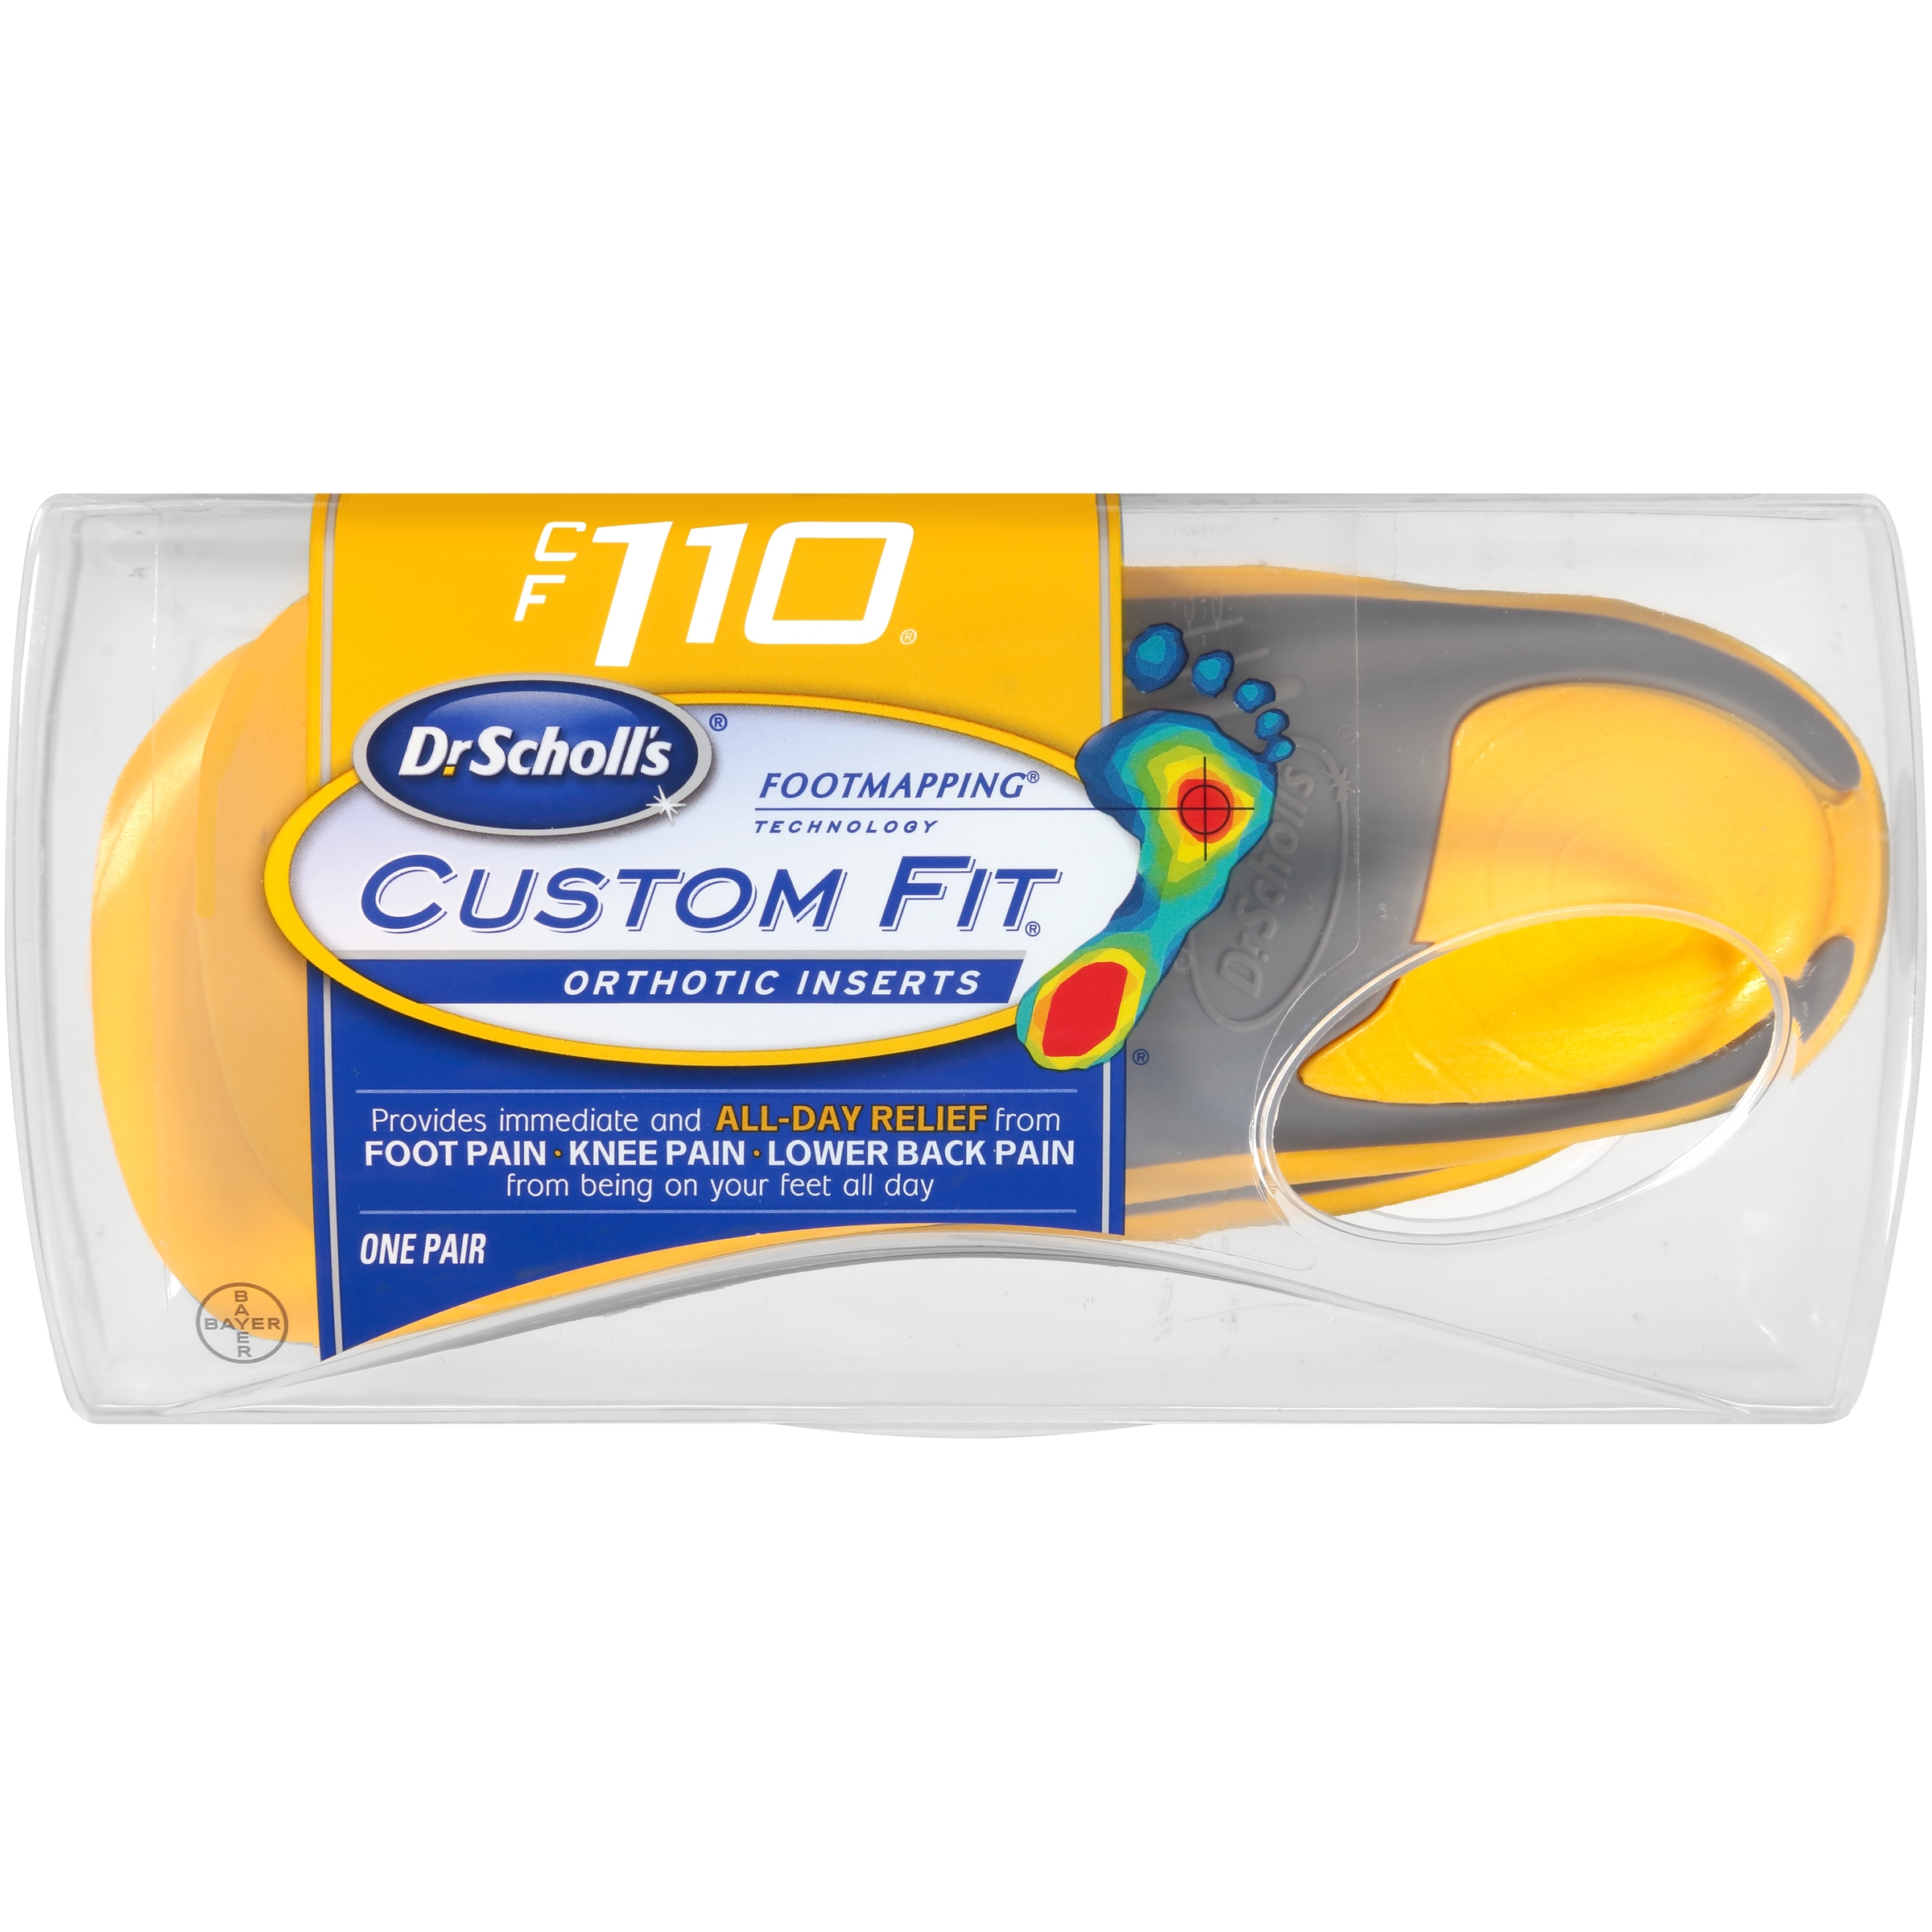 Dr. Scholl's® Custom Fit® Orthotic Inserts CF110, 1 Pair